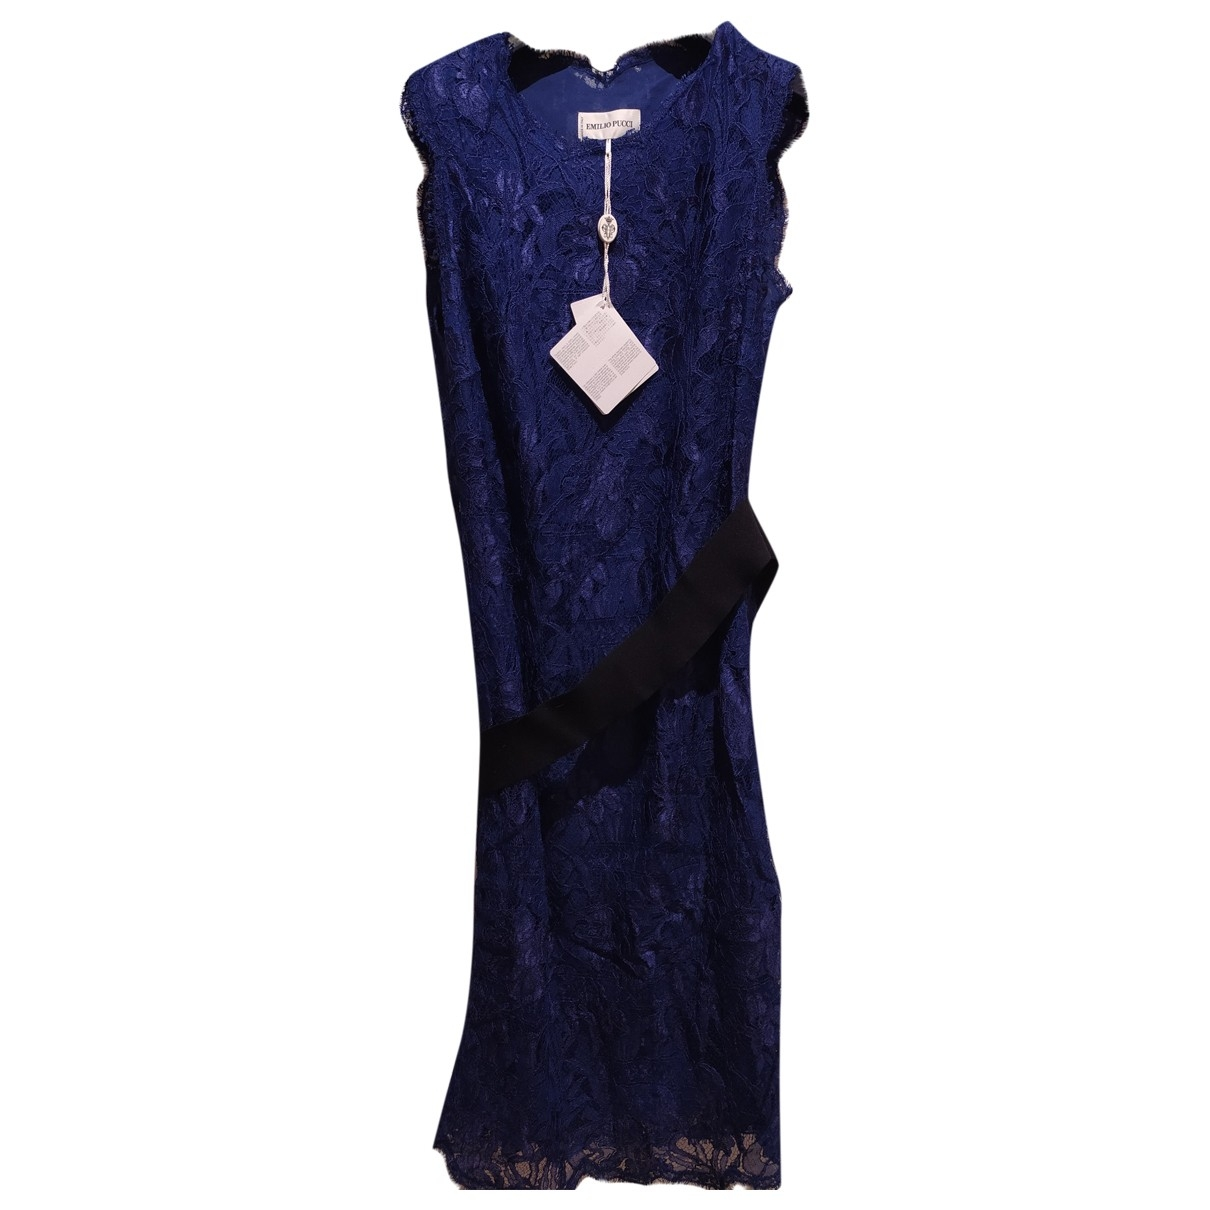 Emilio Pucci \N Blue Lace dress for Women 46 IT